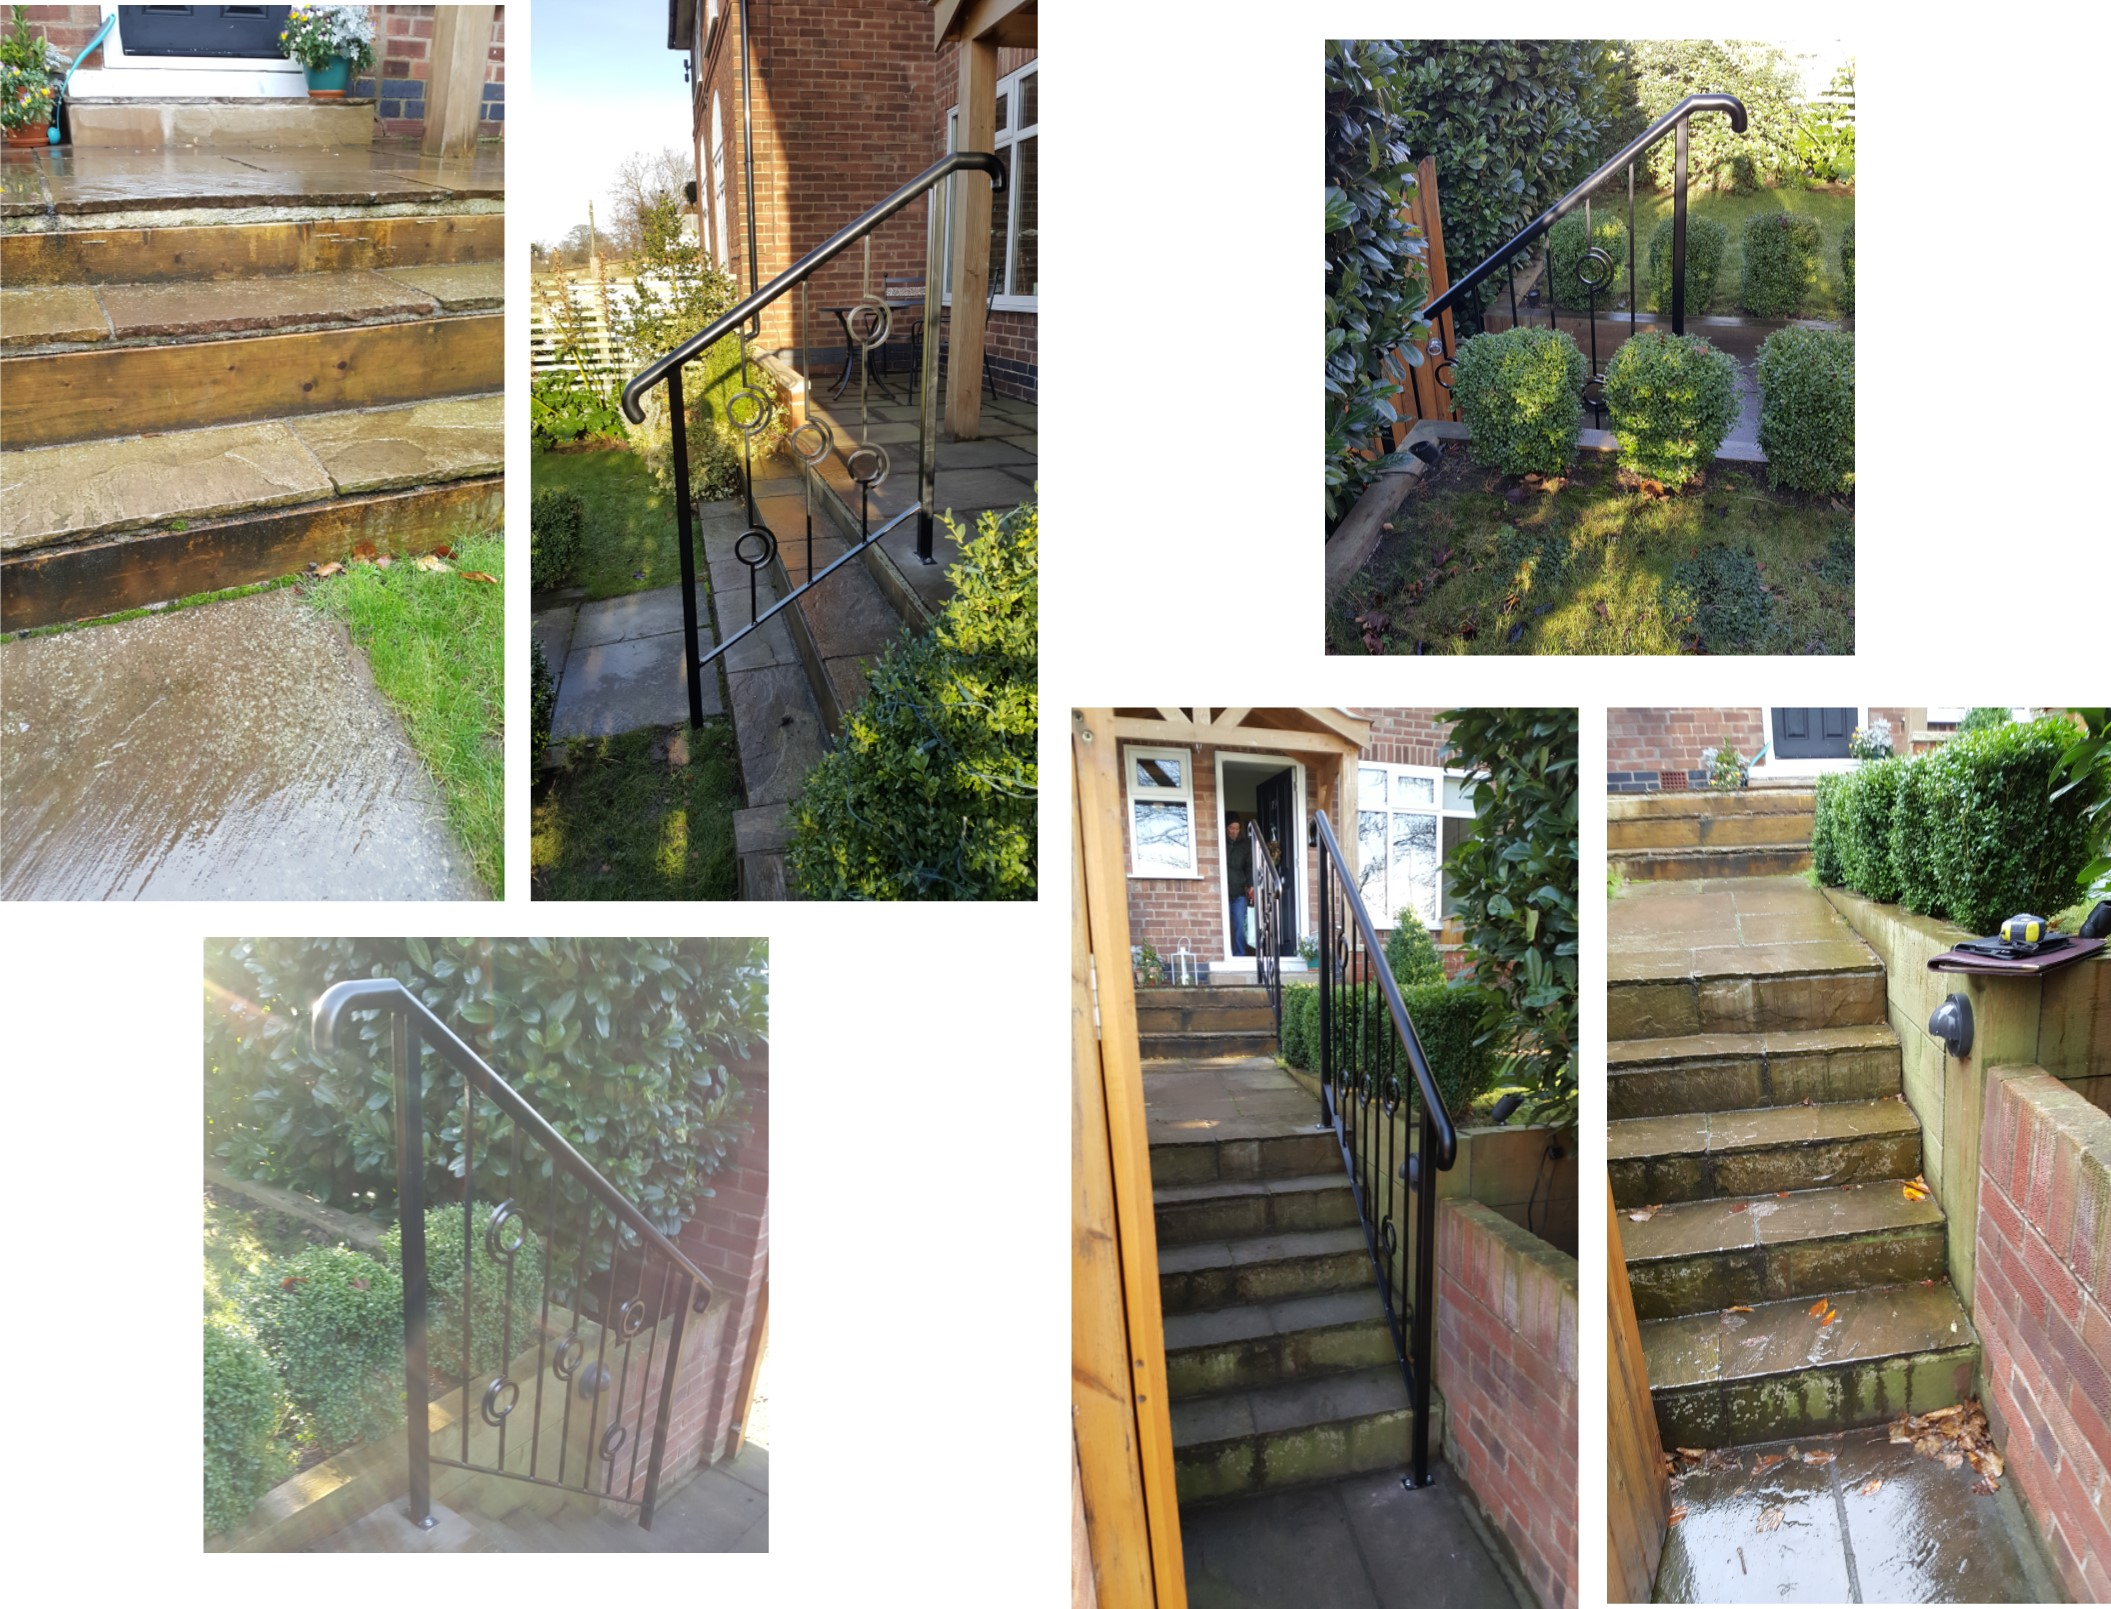 Decorative safety handrail fitted to garden steps.